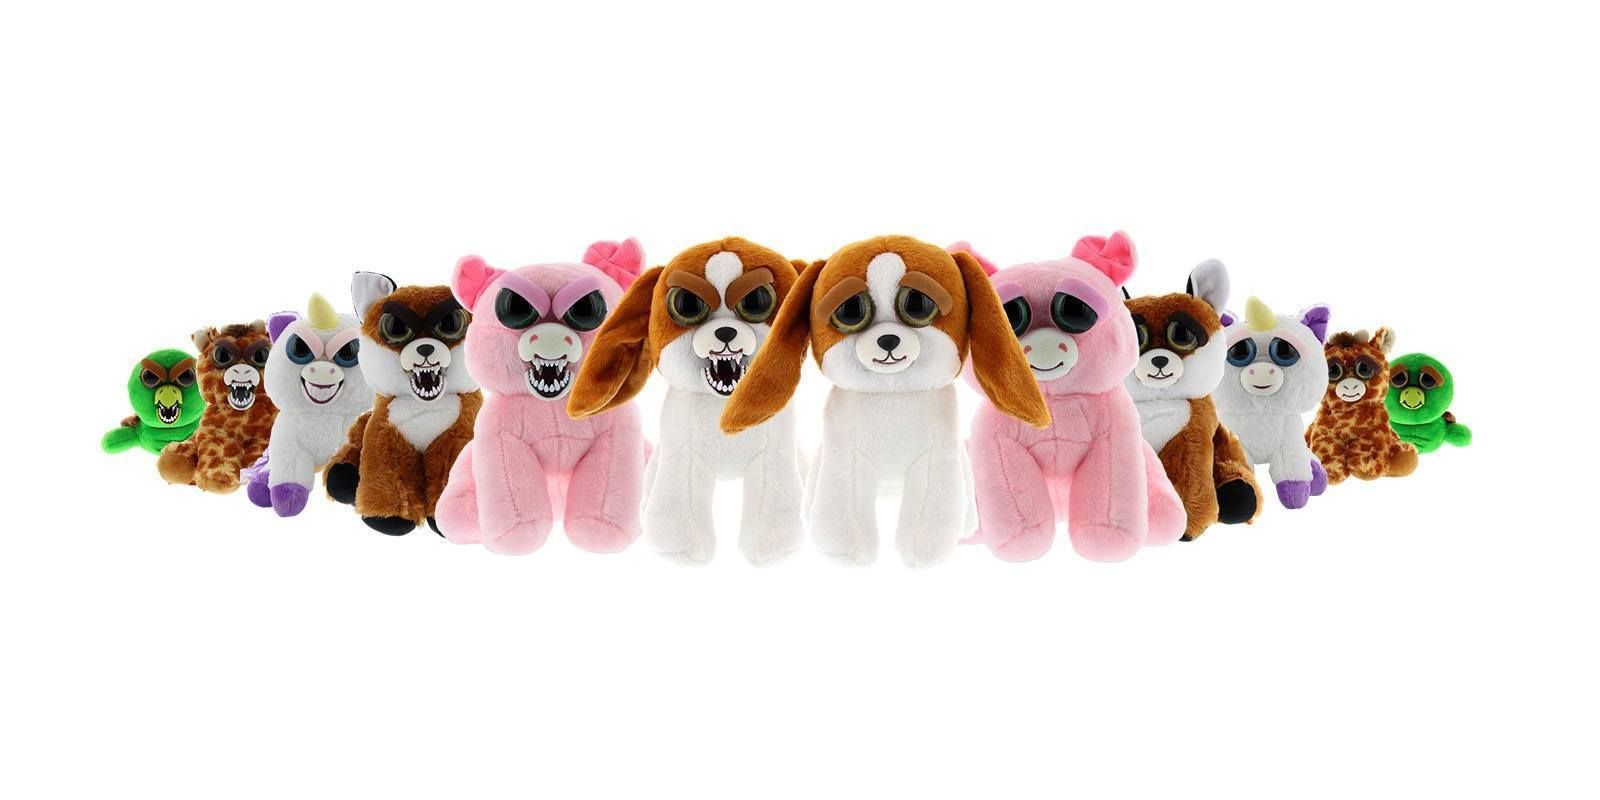 Feisty Pets Plush Stuffed Animals Turn Silly Sly Feisty Many